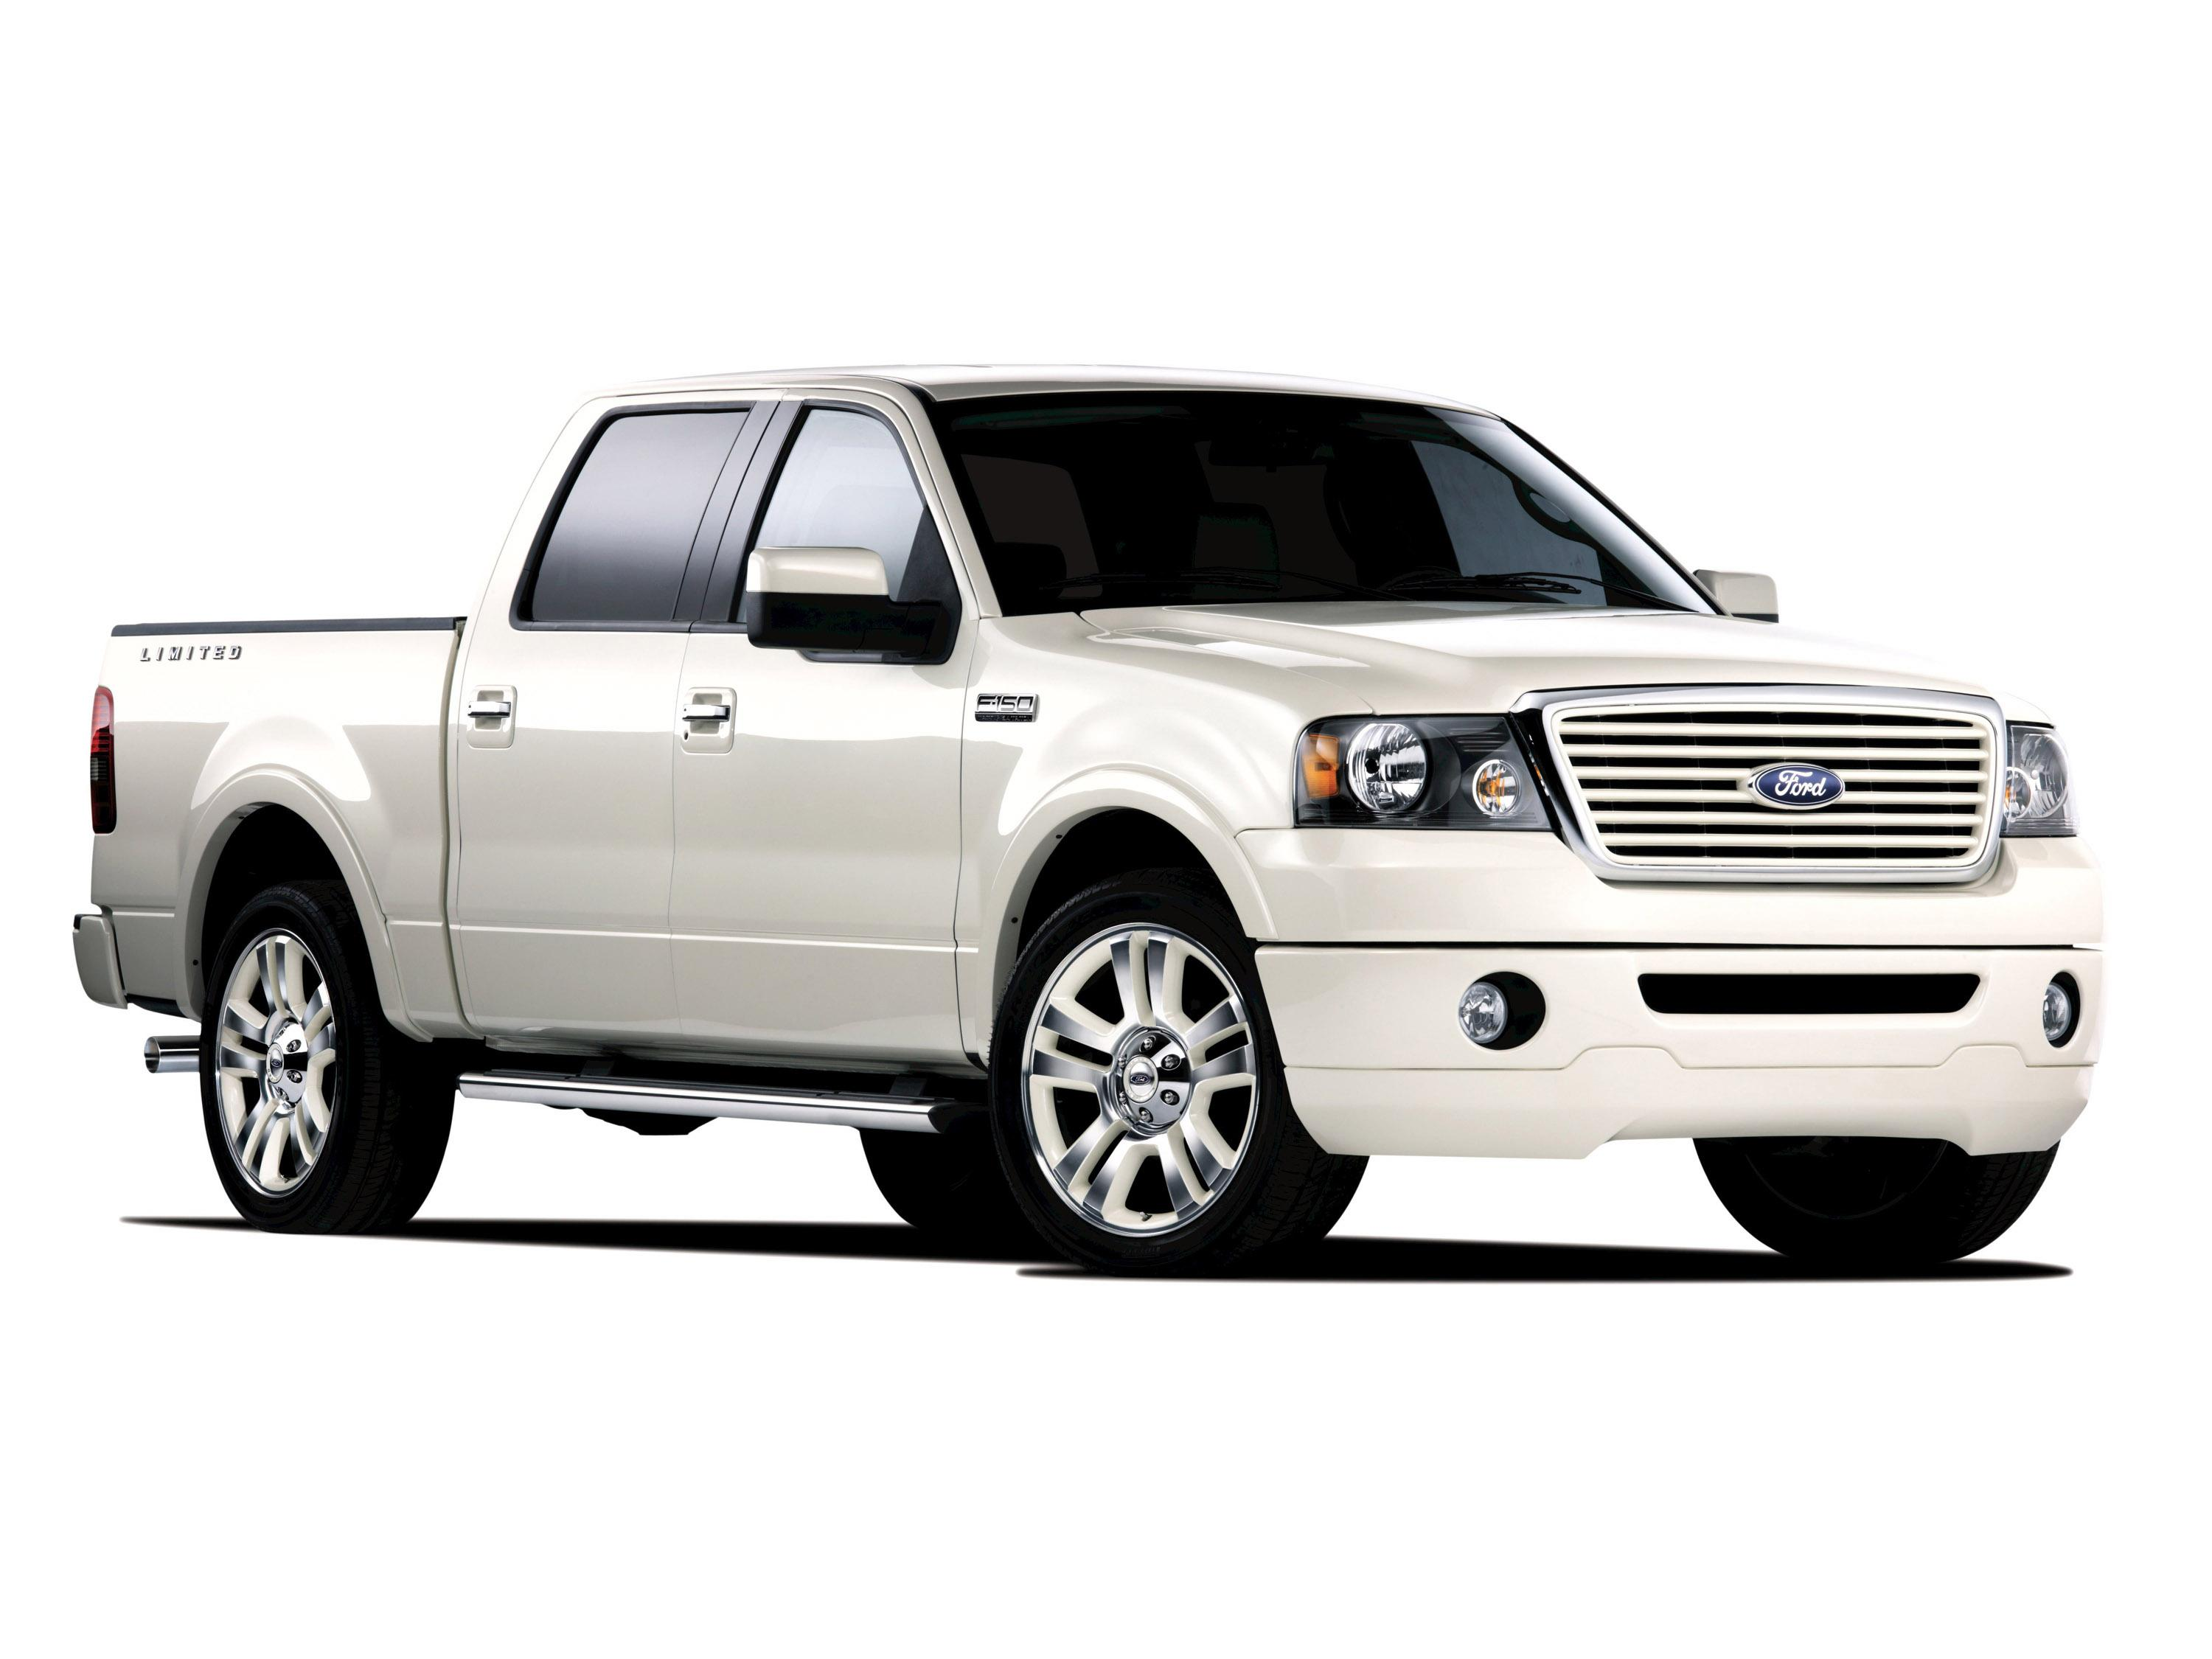 2008 Ford F-150 Lariat Limited | Top Speed